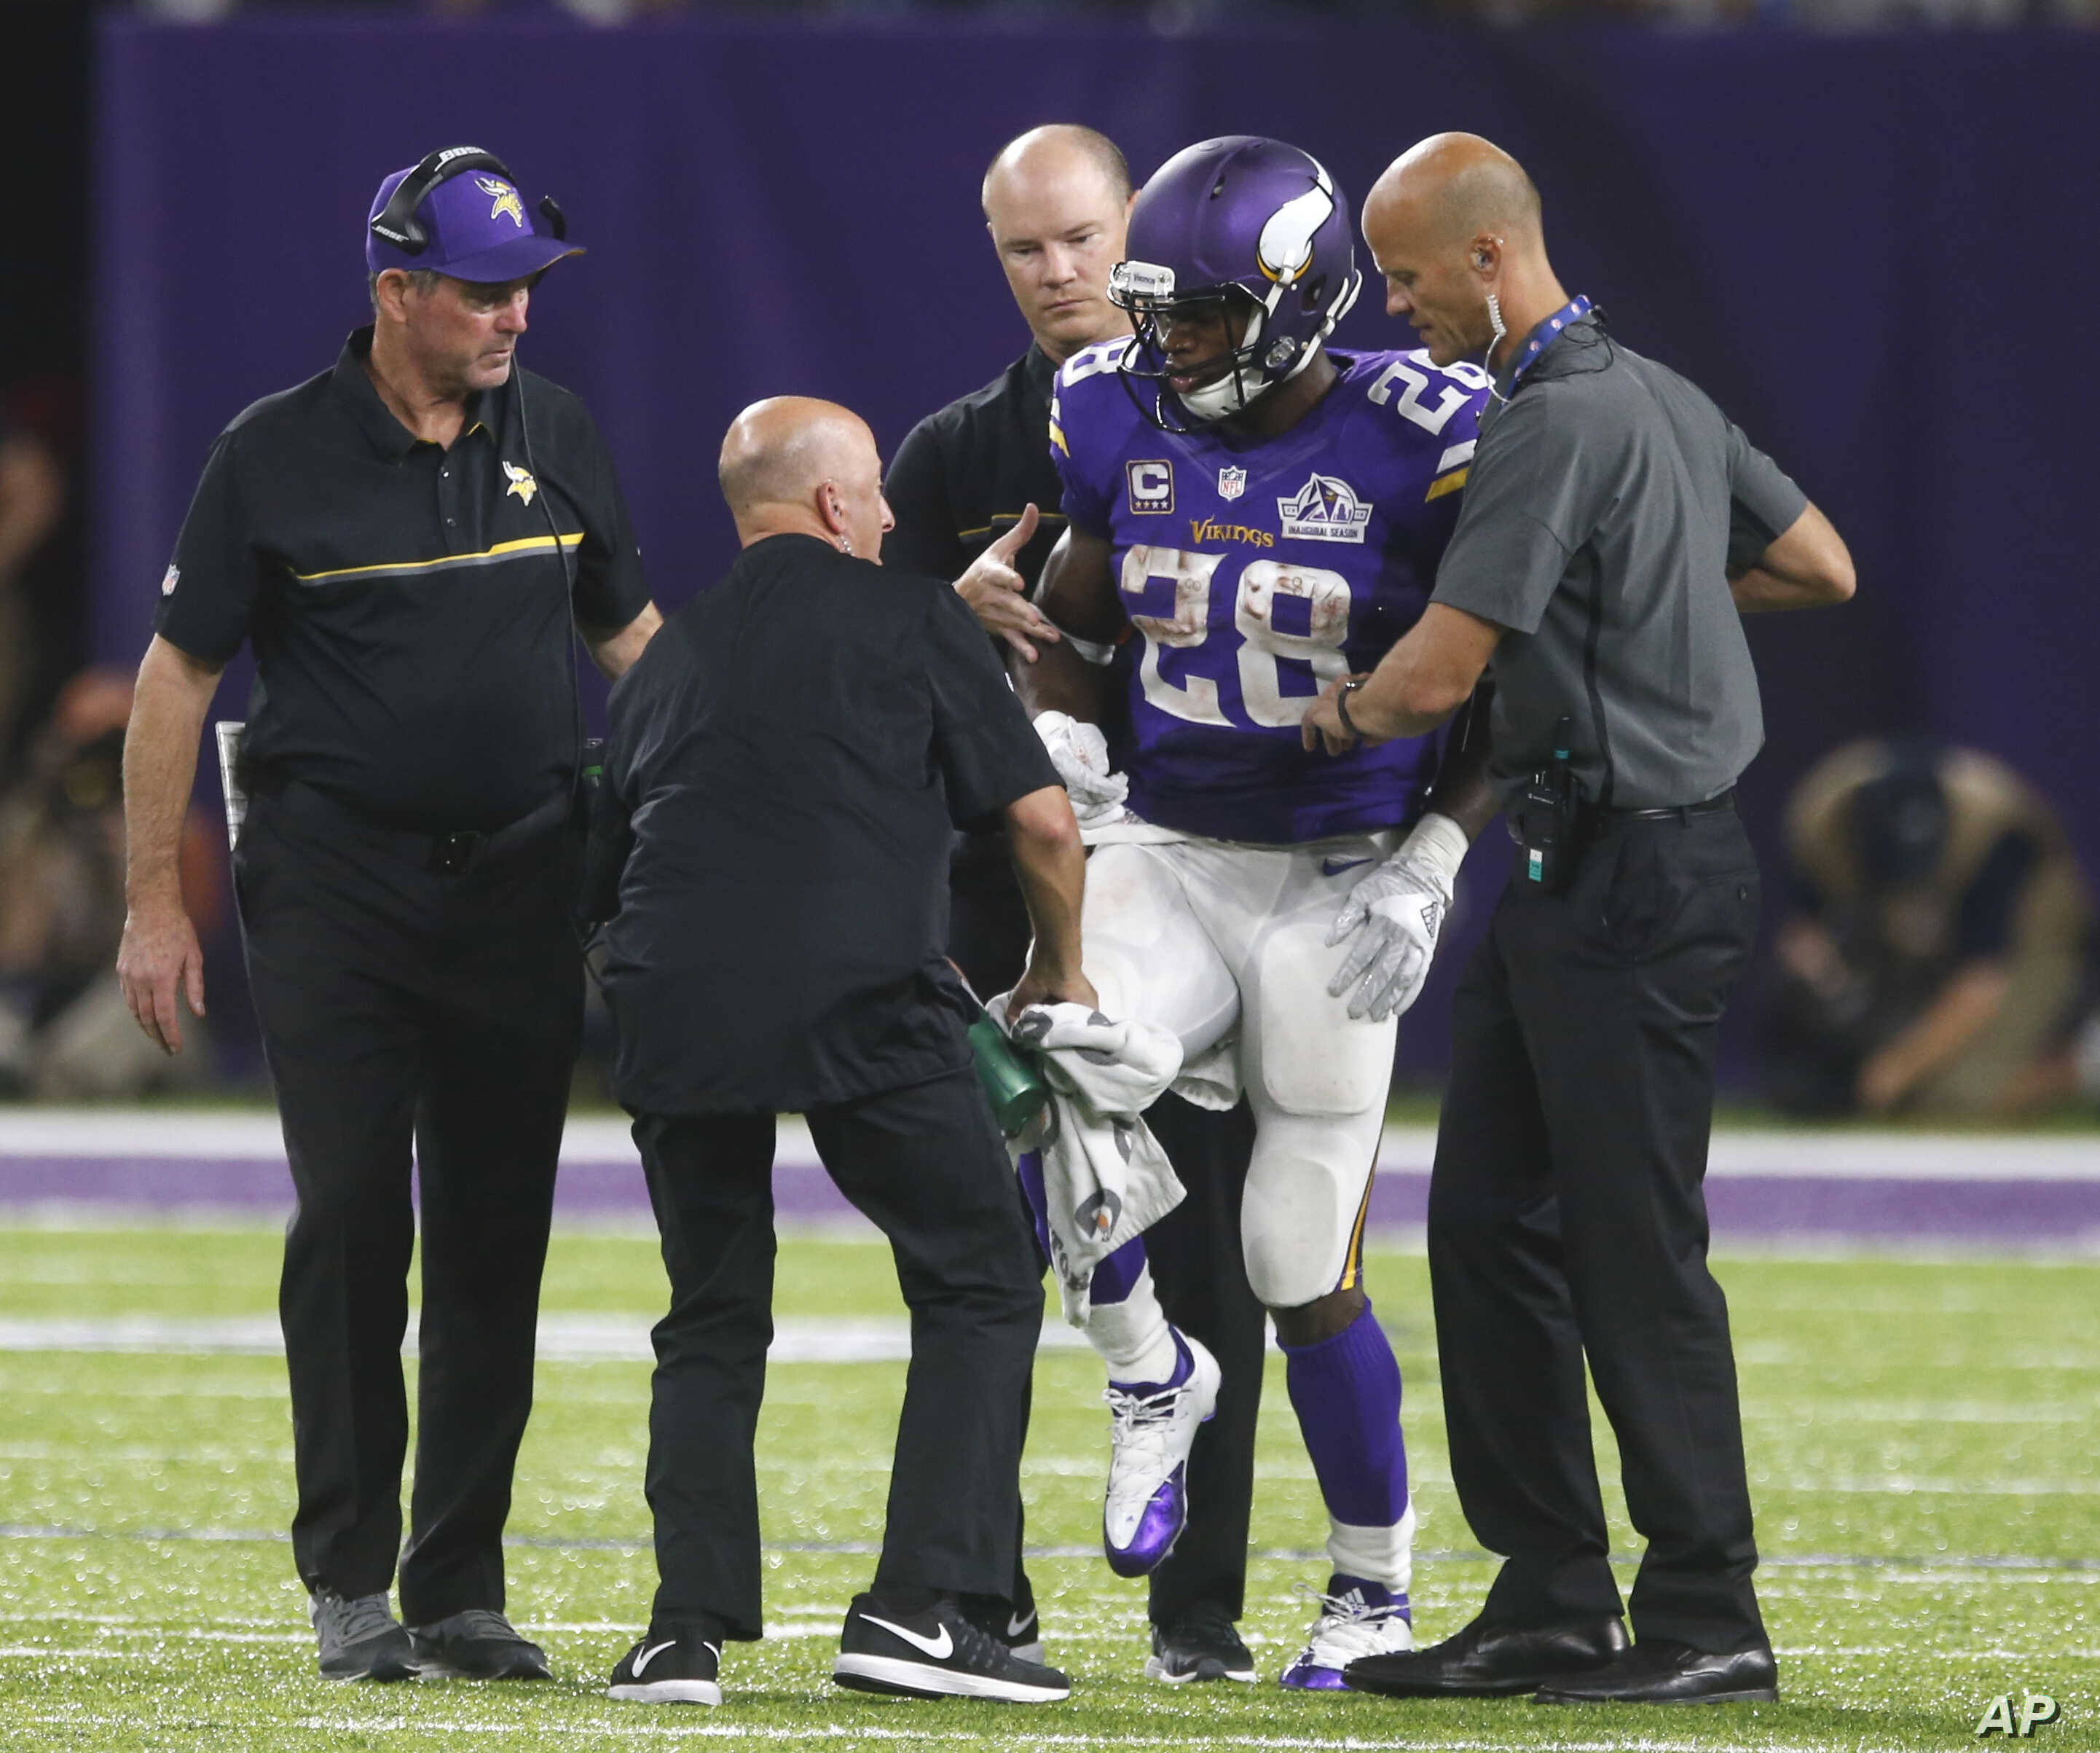 Minnesota Vikings running back Adrian Peterson (28) is helped off the field after getting injured during an NFL football game against the Green Bay Packers, Sept. 18, 2016.